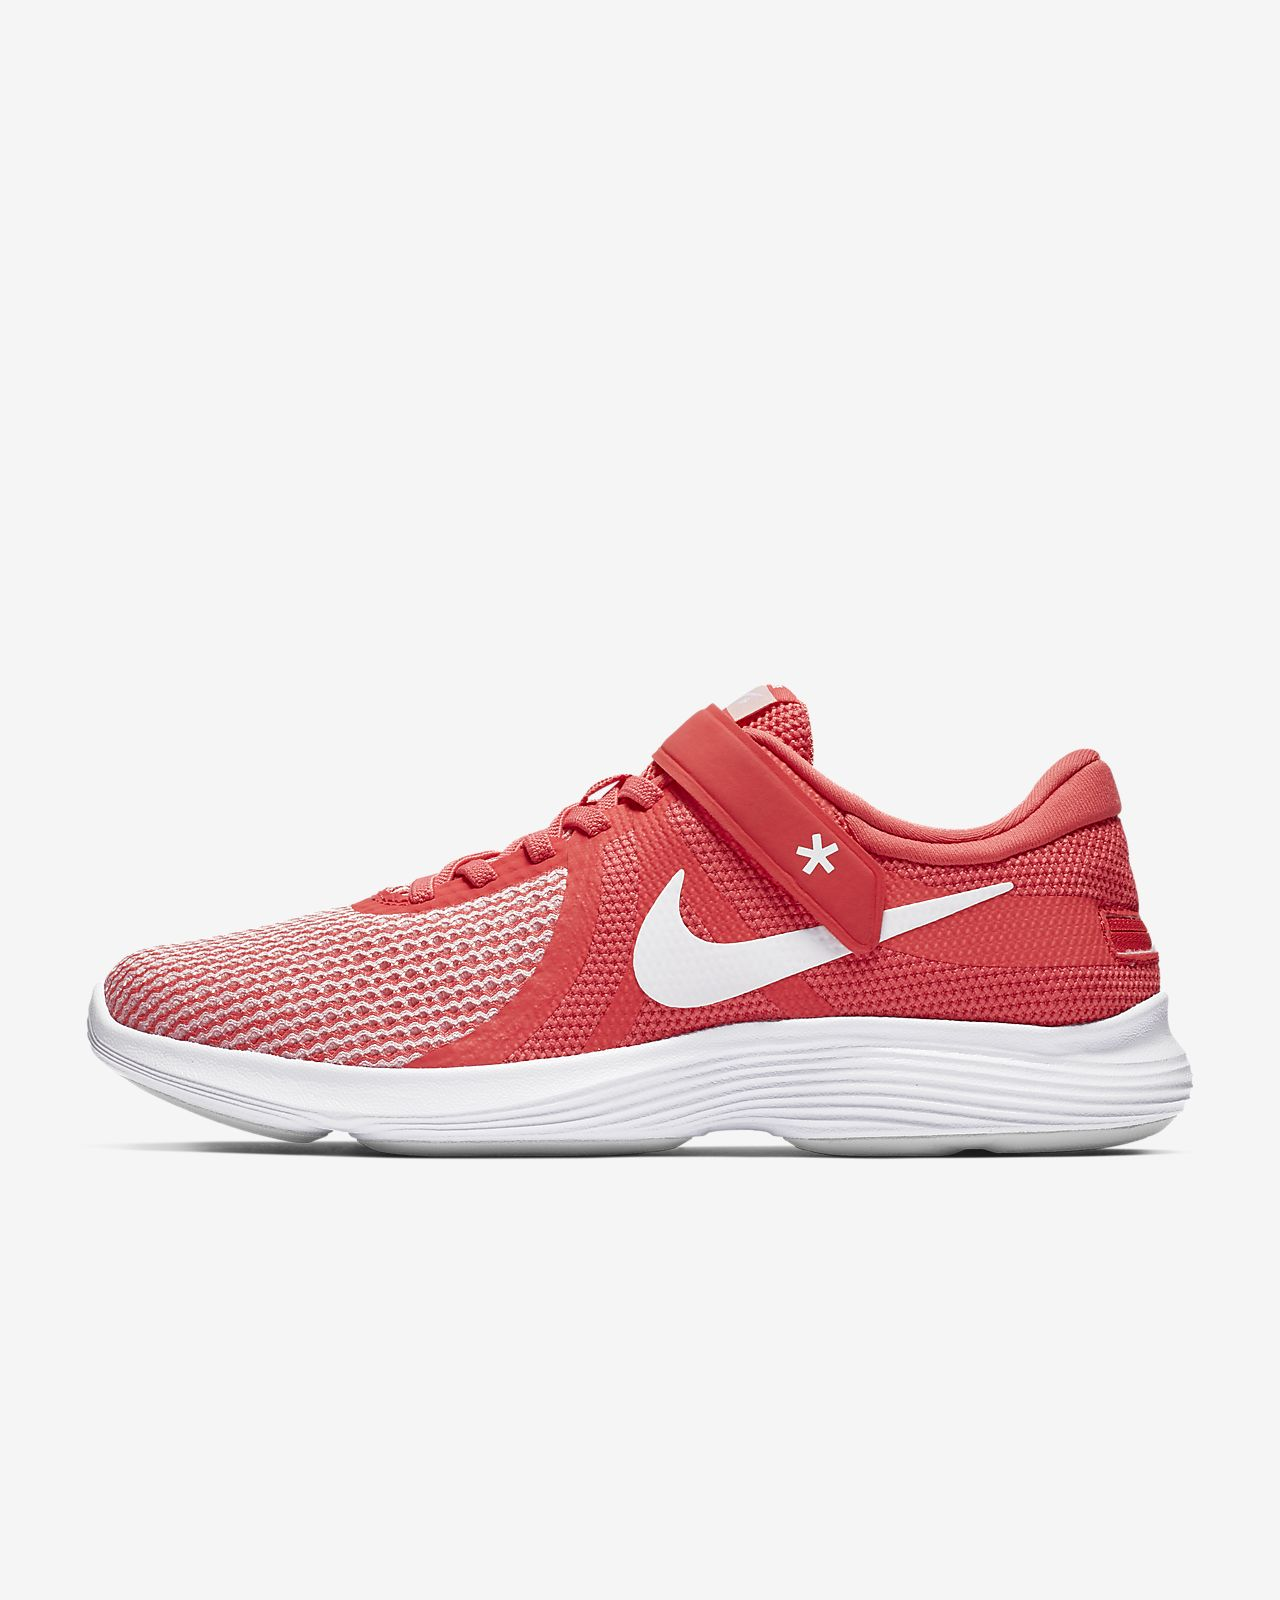 6a99454f6a3a Nike Revolution 4 FlyEase Women s Running Shoe. Nike.com AT